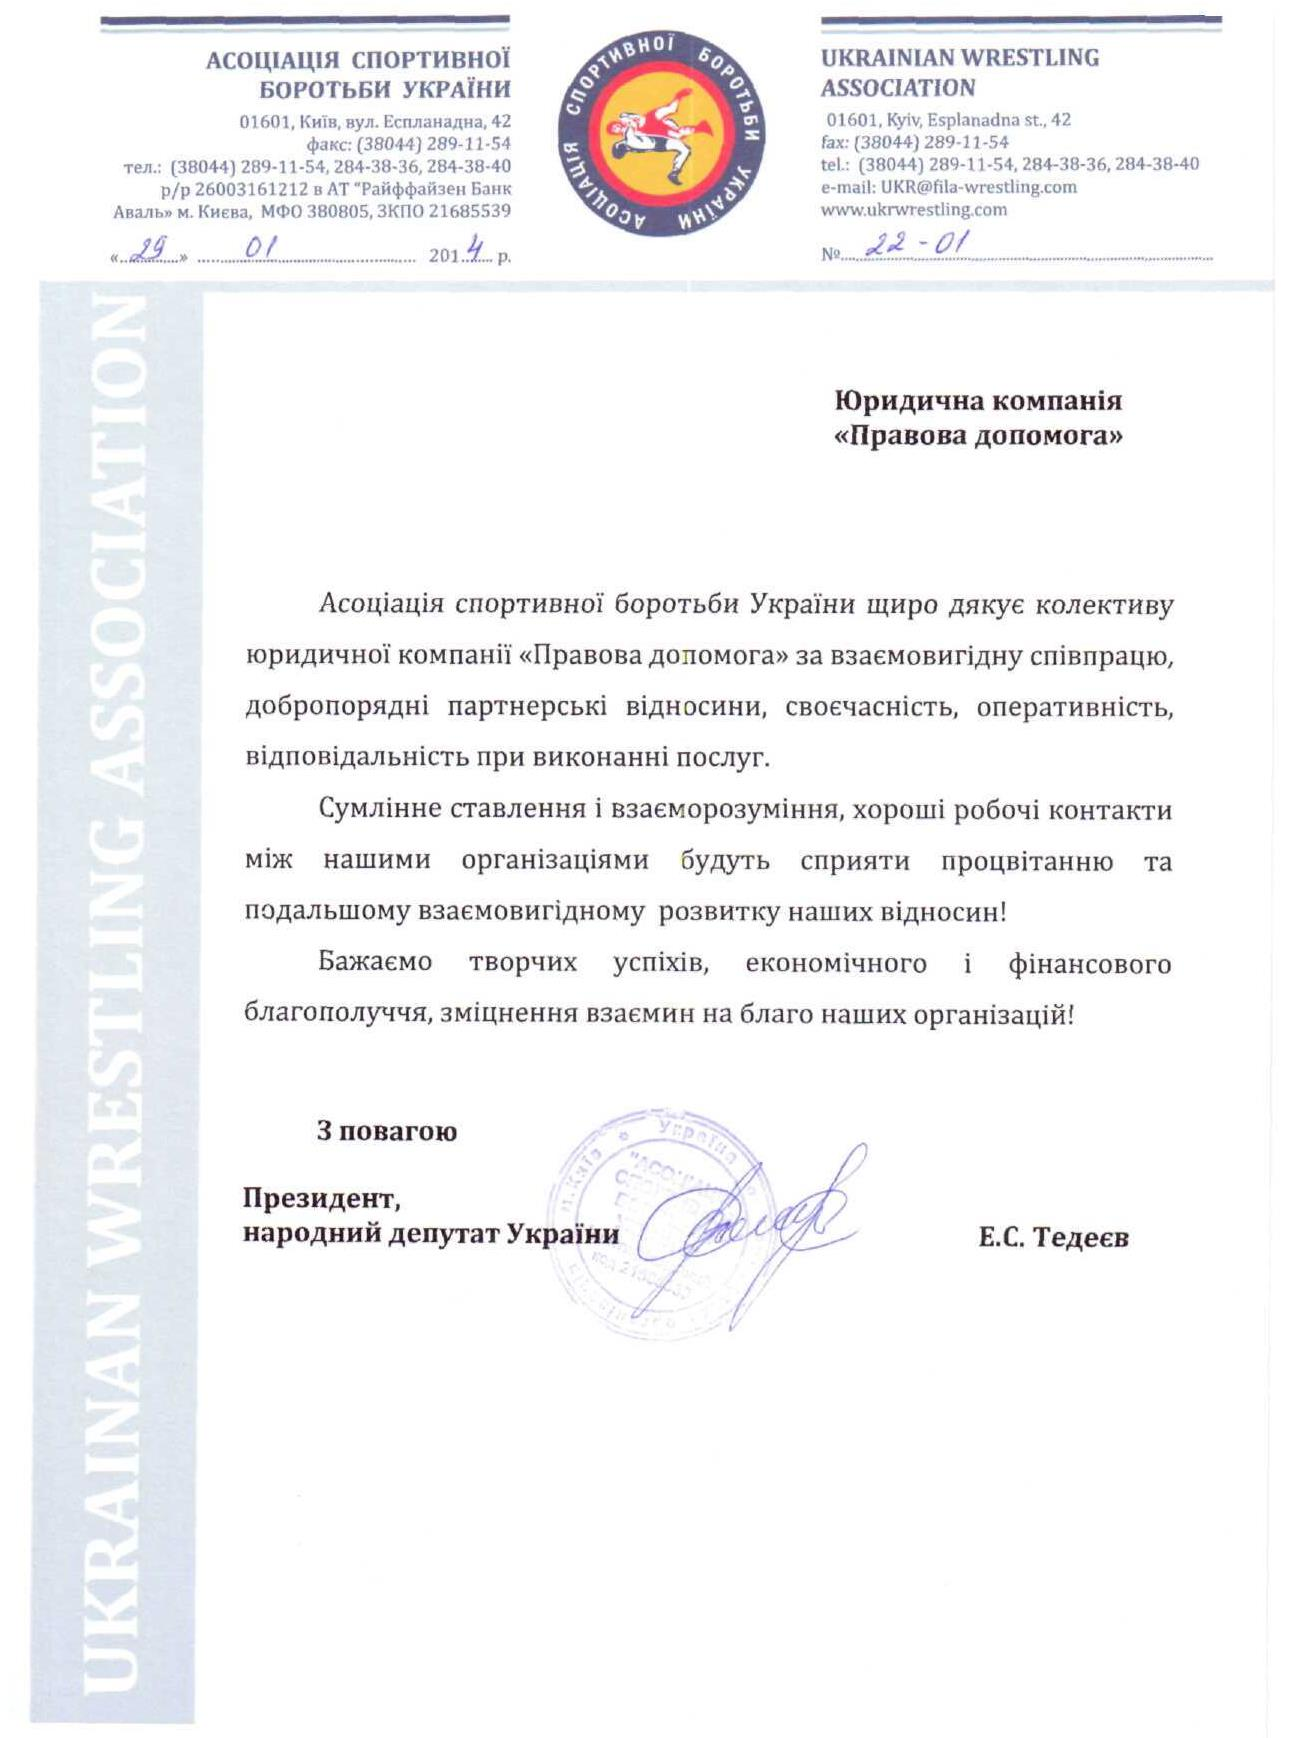 all letters of appreciation ukrainian wrestling association would like to express its sincere appreciation to the team of law firm pravova dopomoga for mutually beneficial